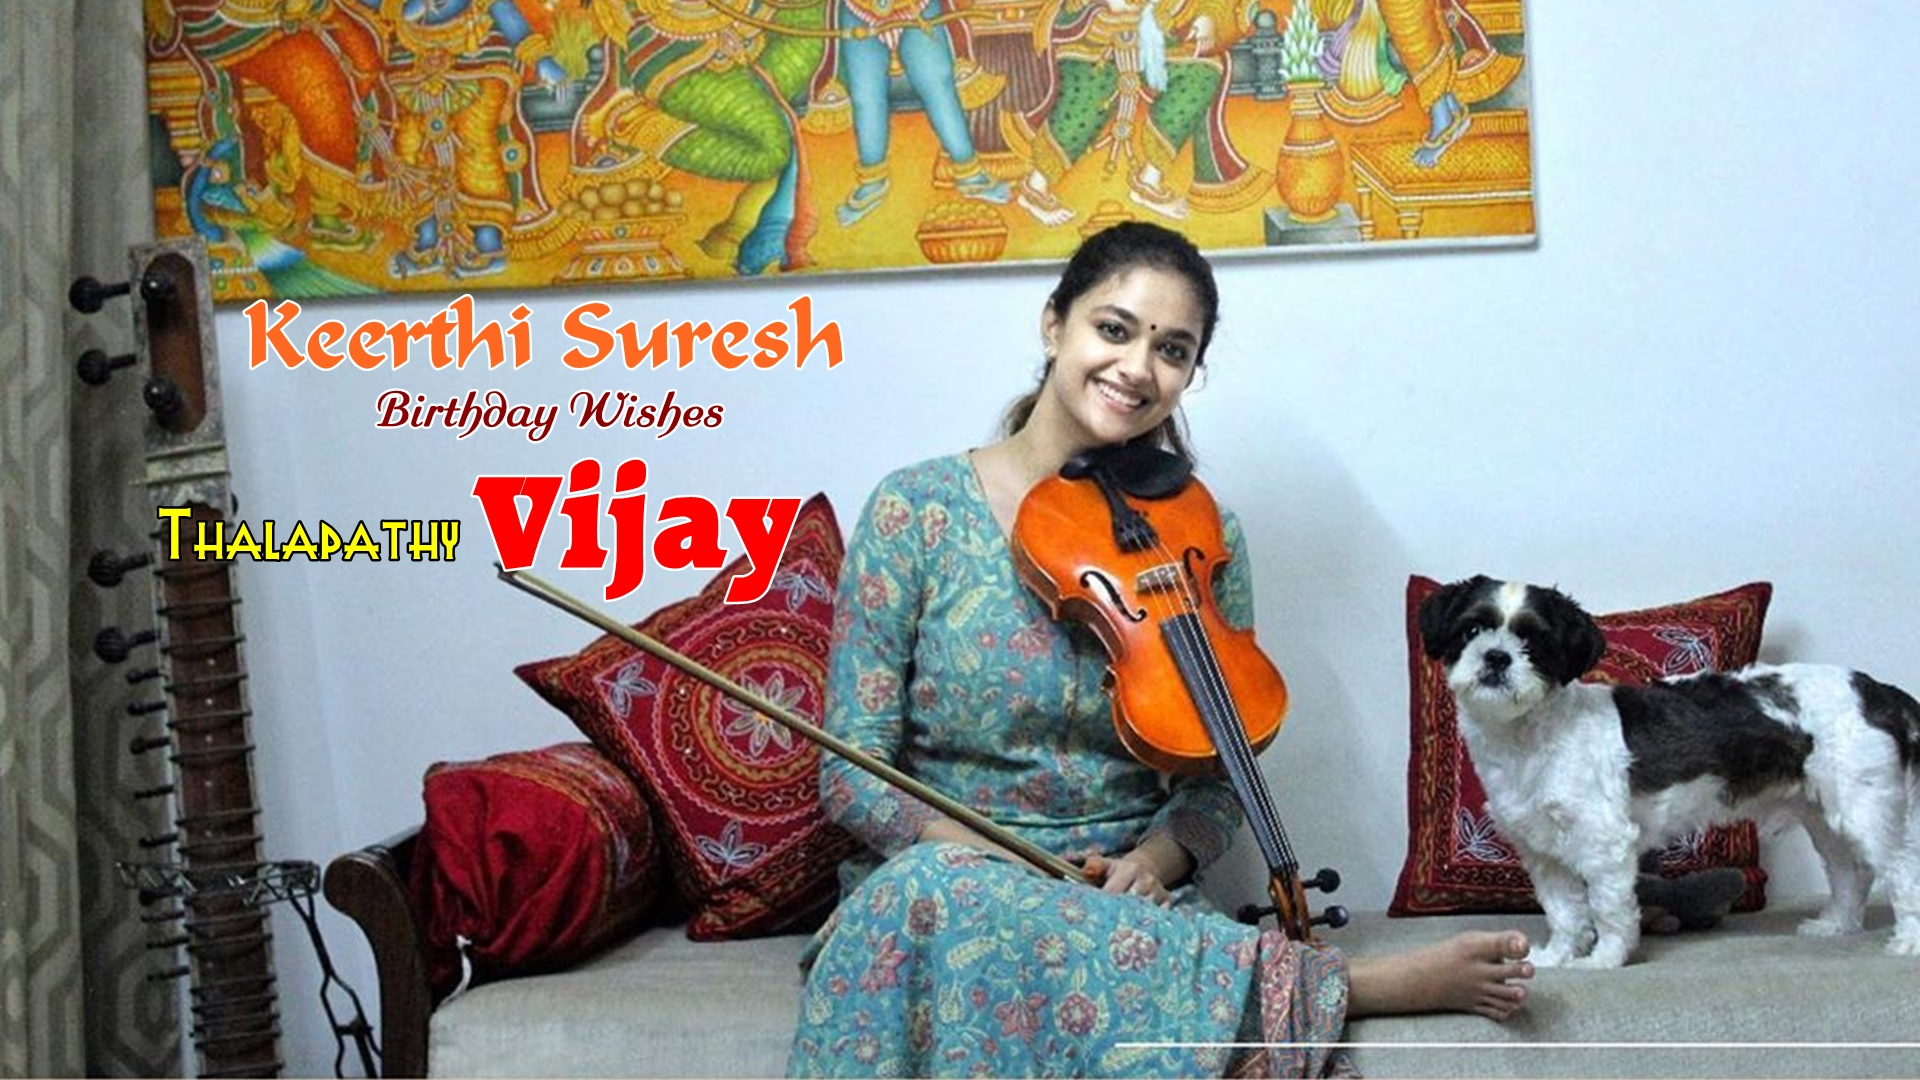 Keerthi Suresh convey birthday wishes to Thalapathy Vijay in a Musical Way